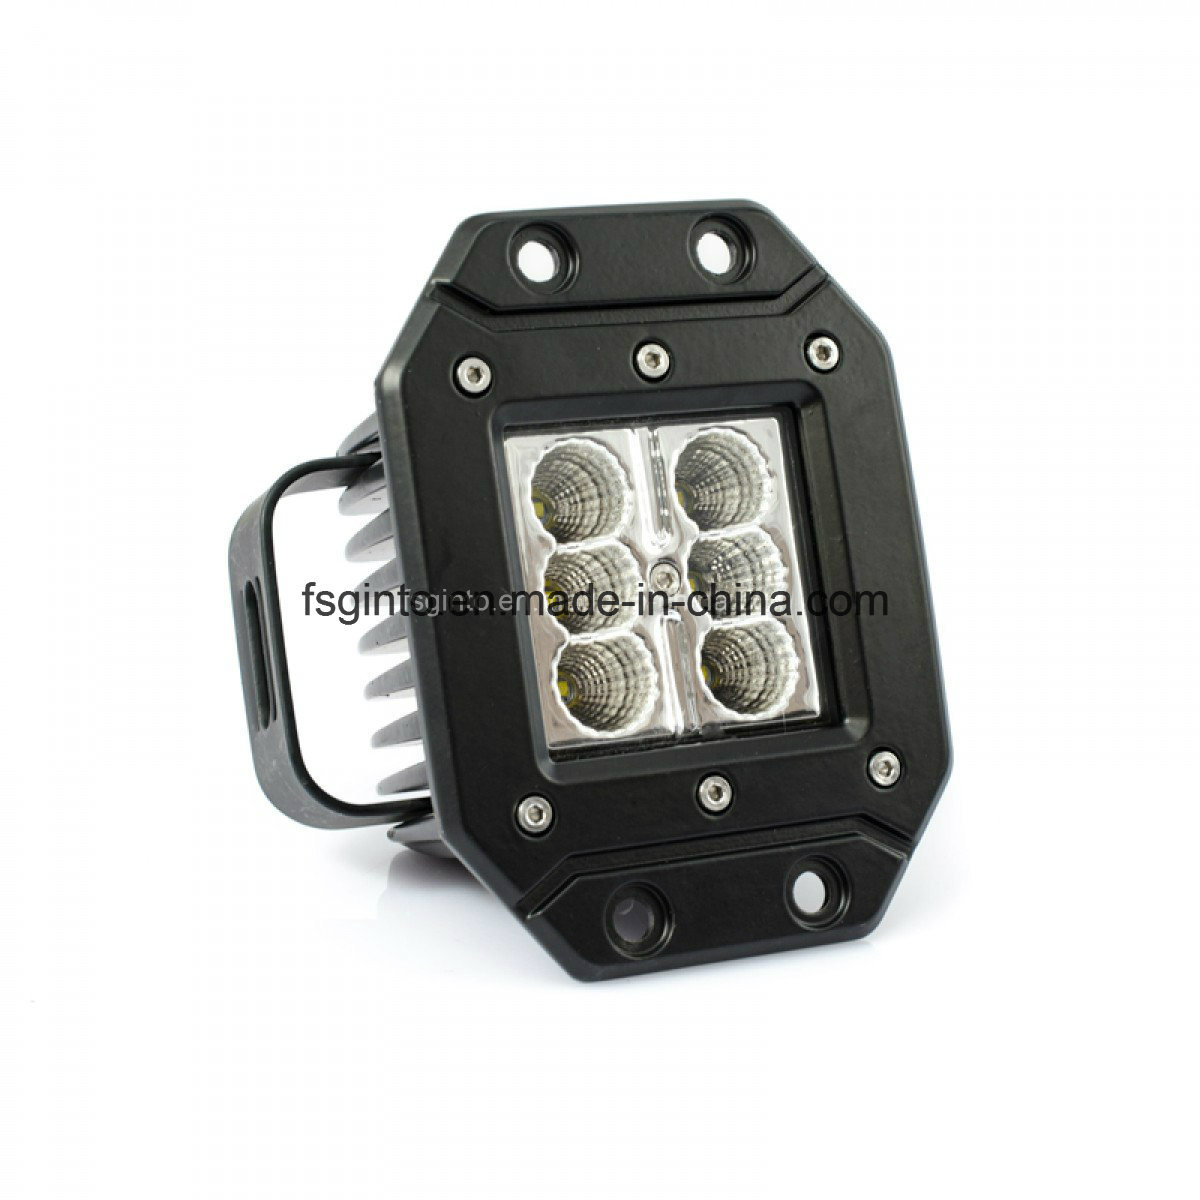 Jeep Accessories Flush Mount CREE 24W LED Work Light (GT1022A-24W)